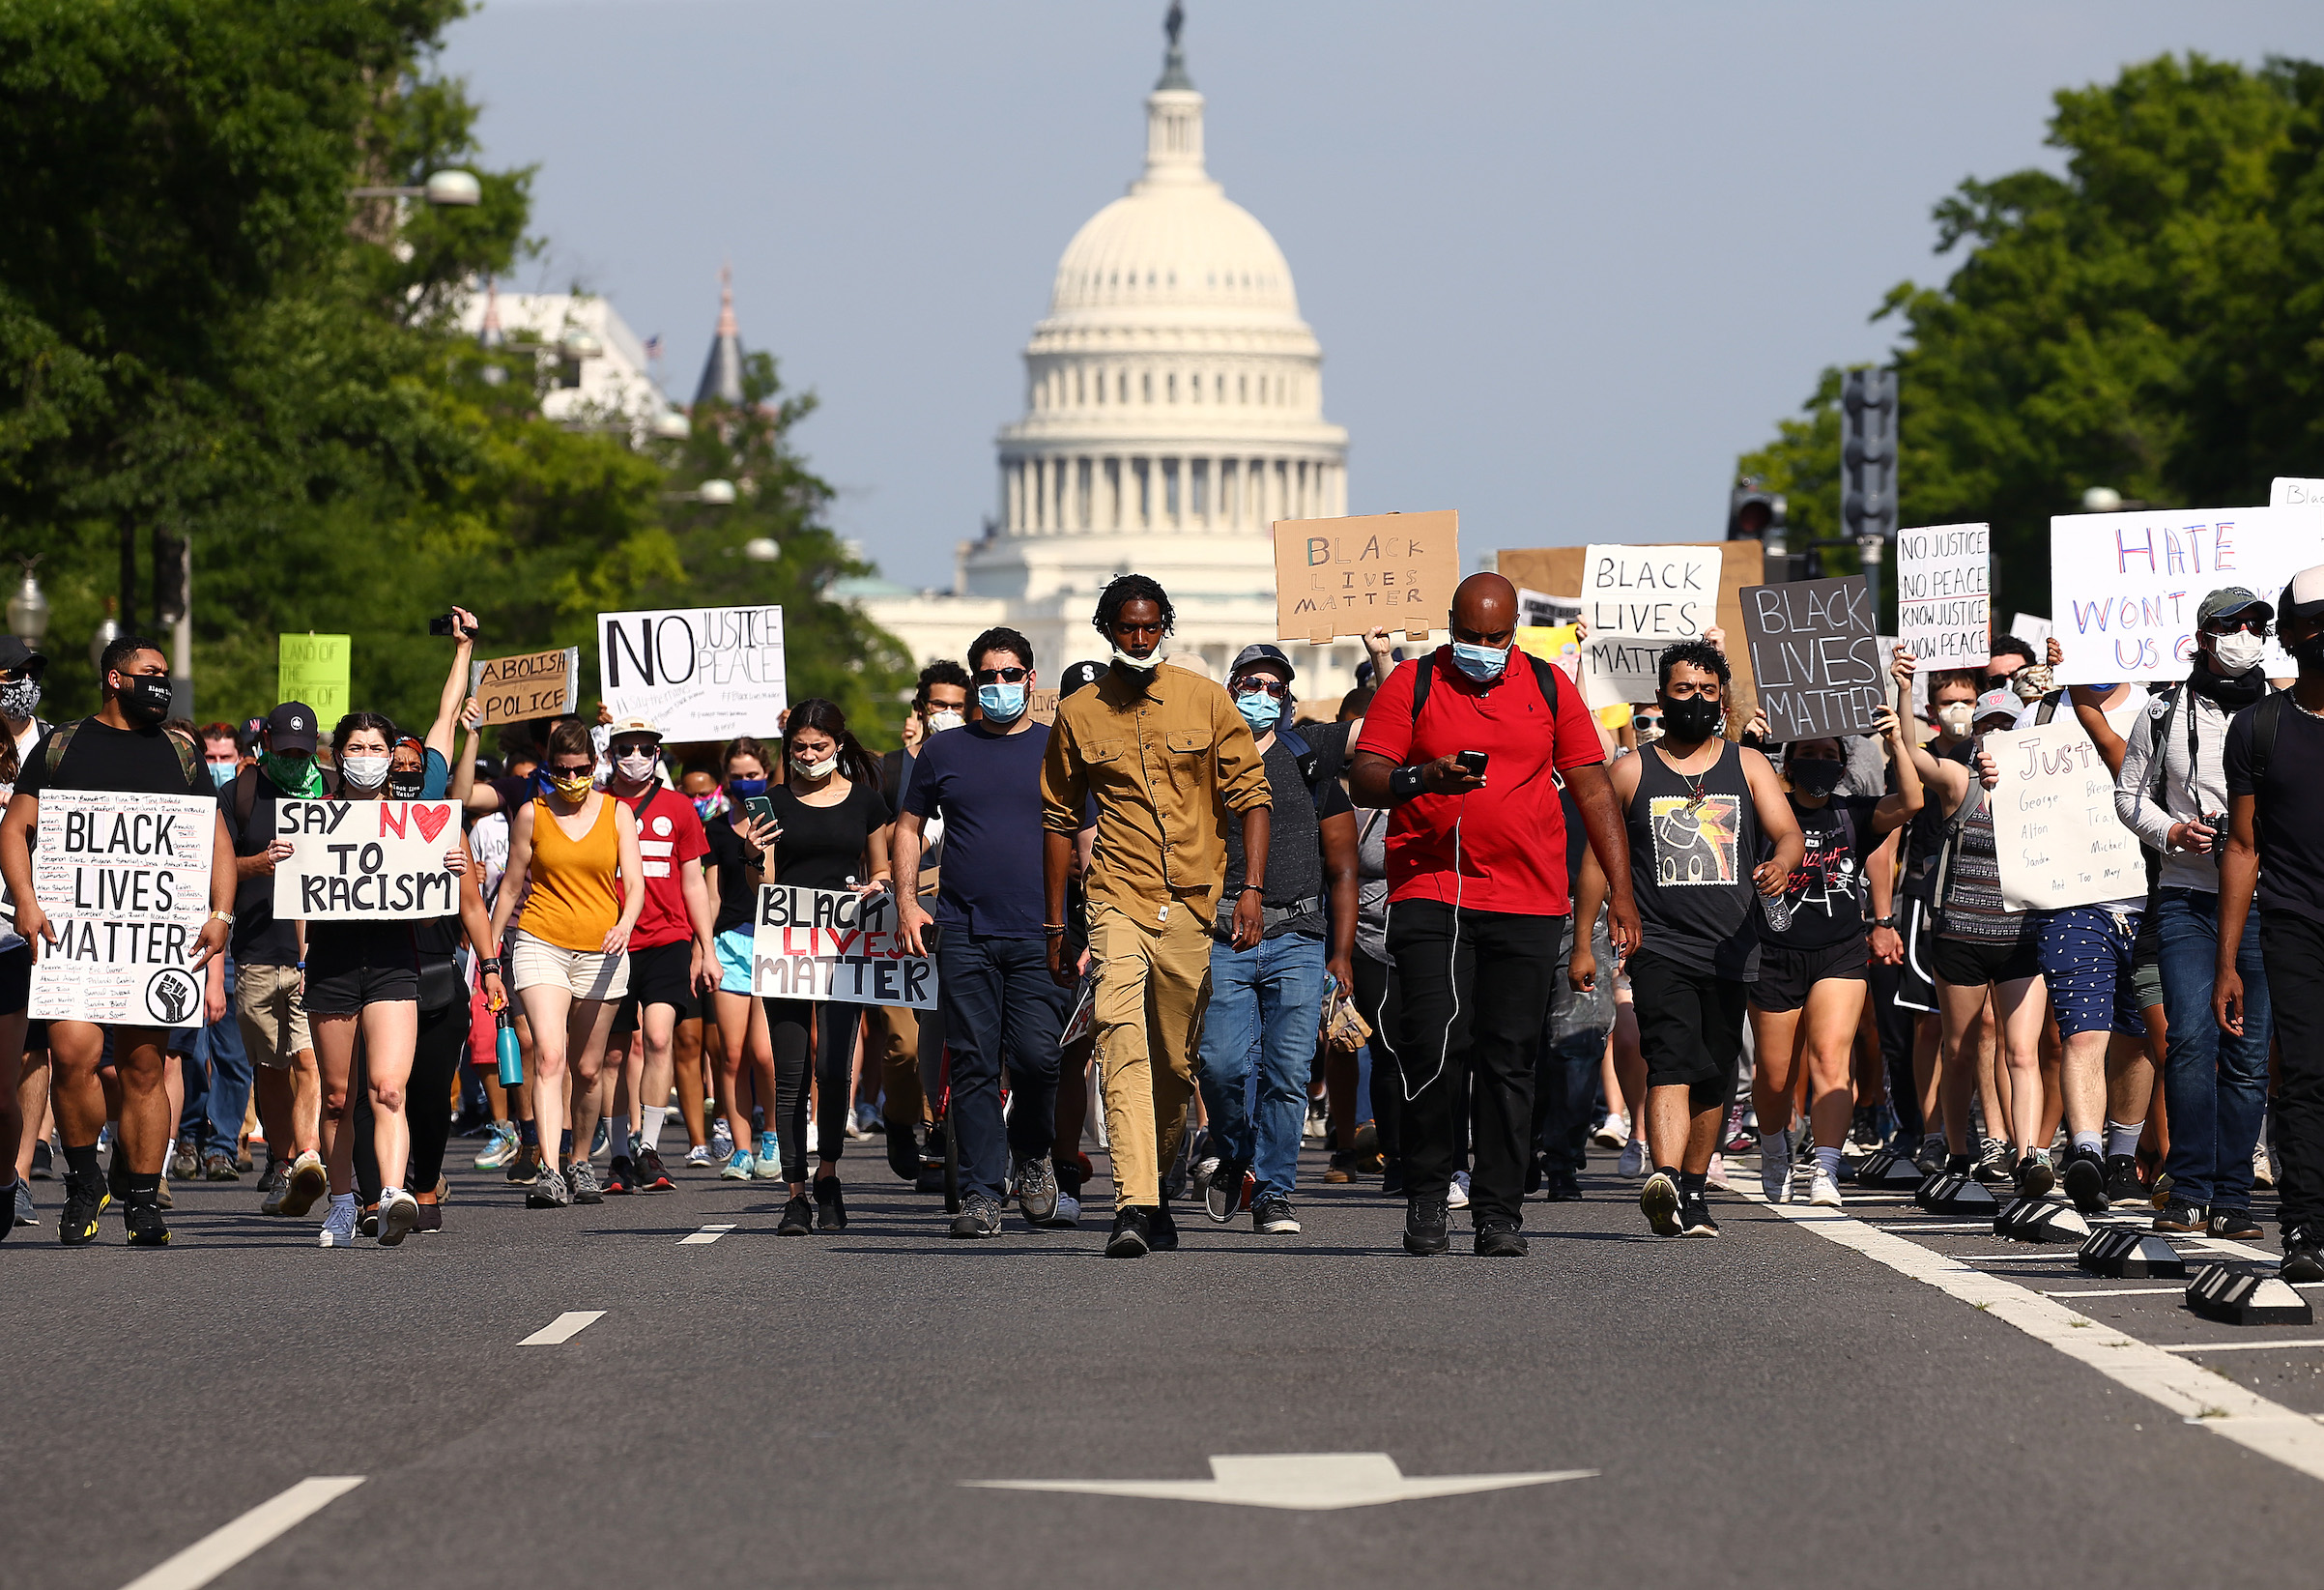 Demonstrators march down Pennsylvania Avenue near the Trump International Hotel during a protest against police brutality and the death of George Floyd, on June 3, 2020 in Washington, D.C.